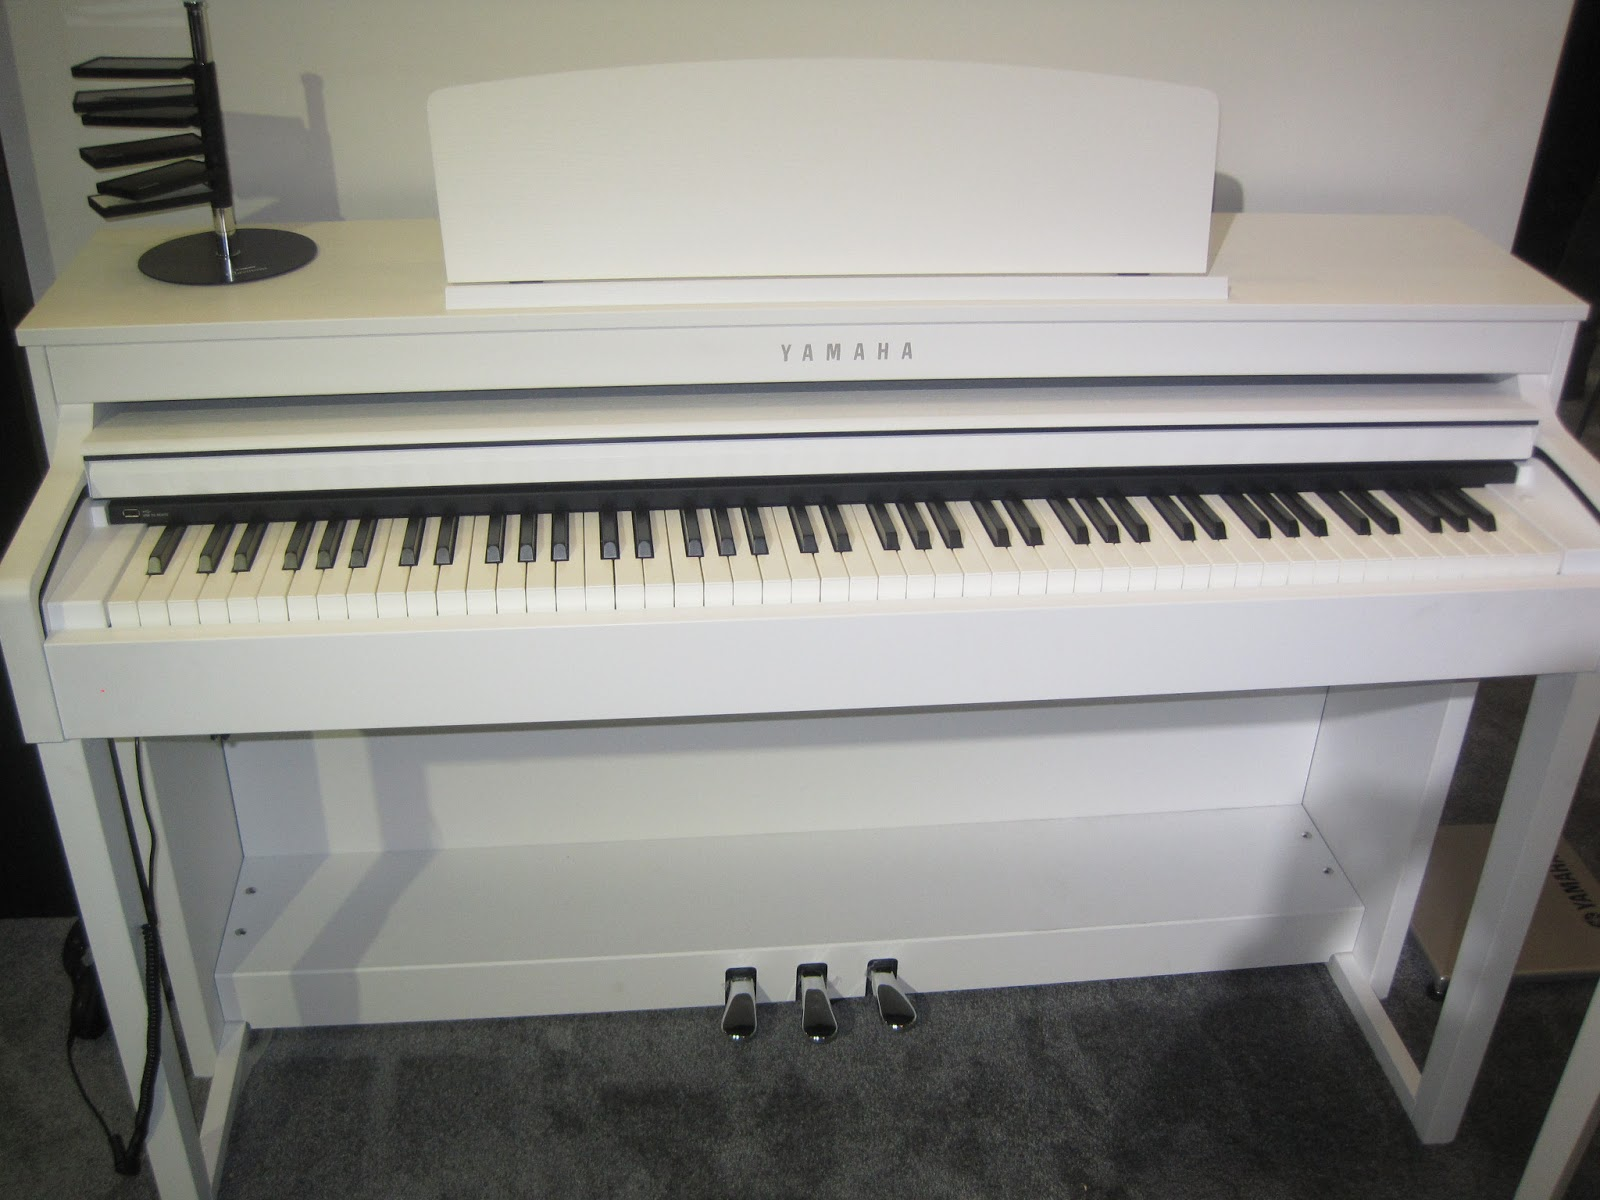 Az piano reviews review yamaha clp430 clp440 clp470 for White yamaha piano